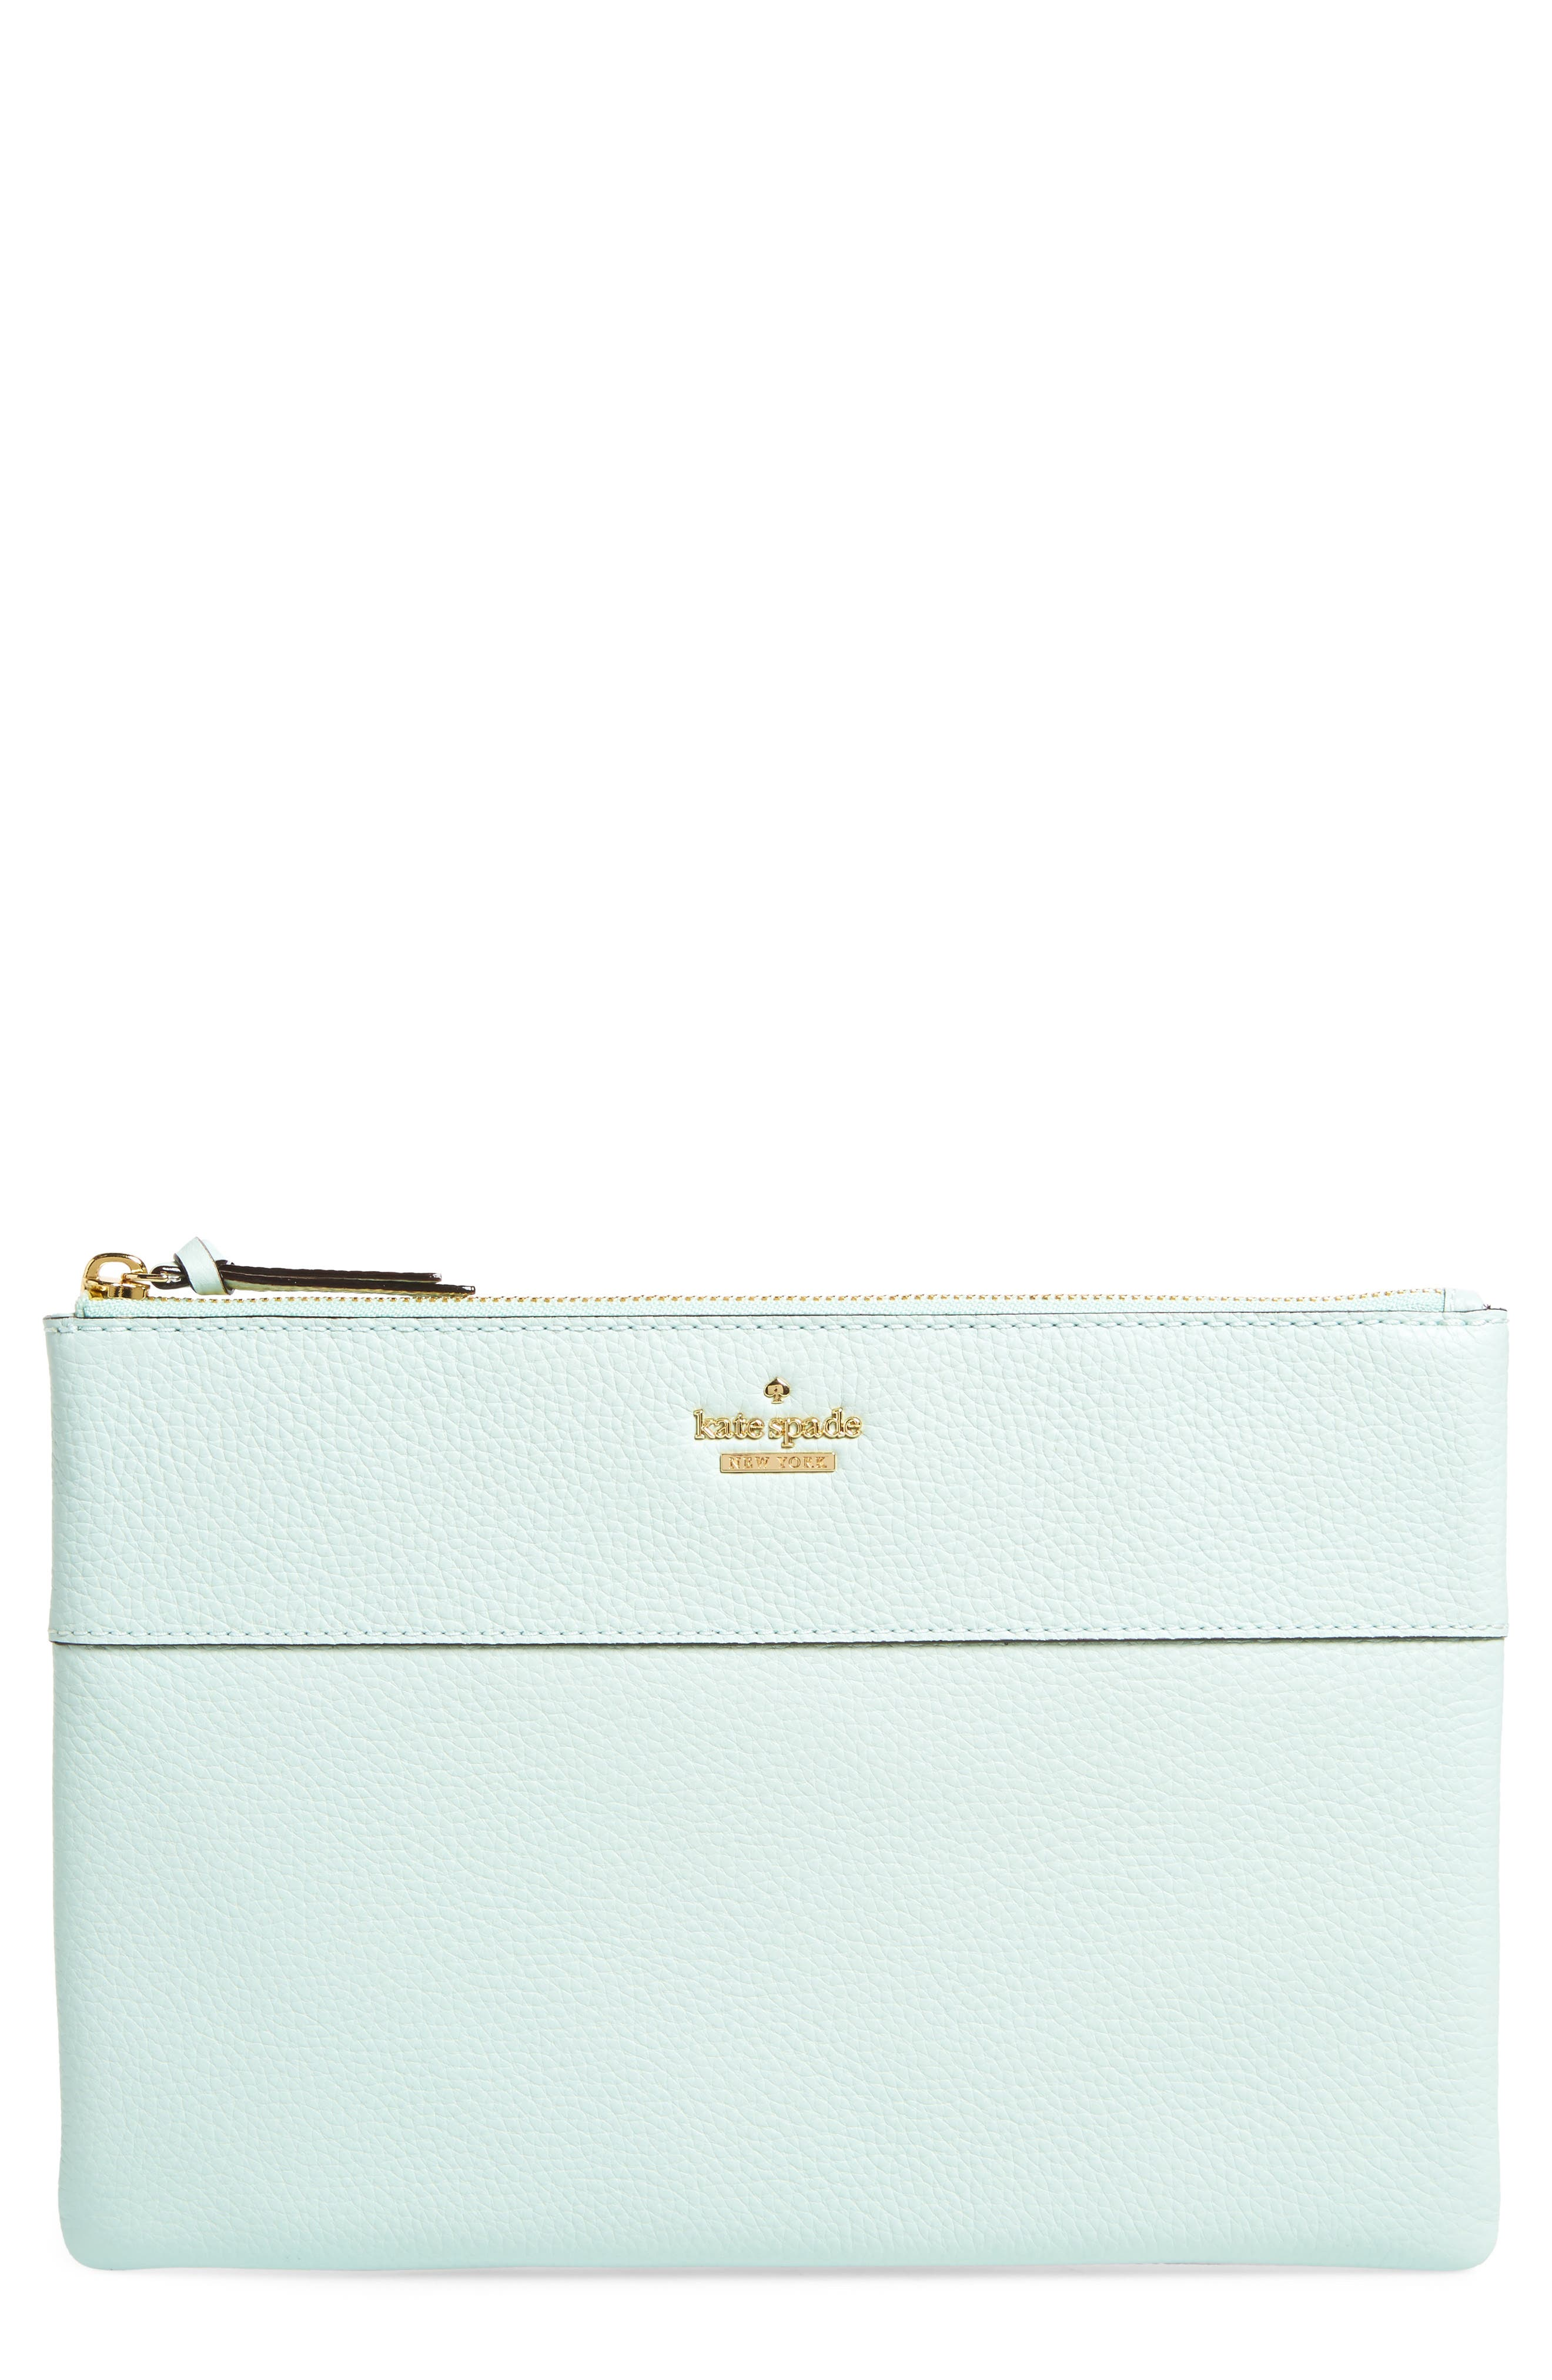 Alternate Image 1 Selected - kate spade new york jackson street large mila leather pouch